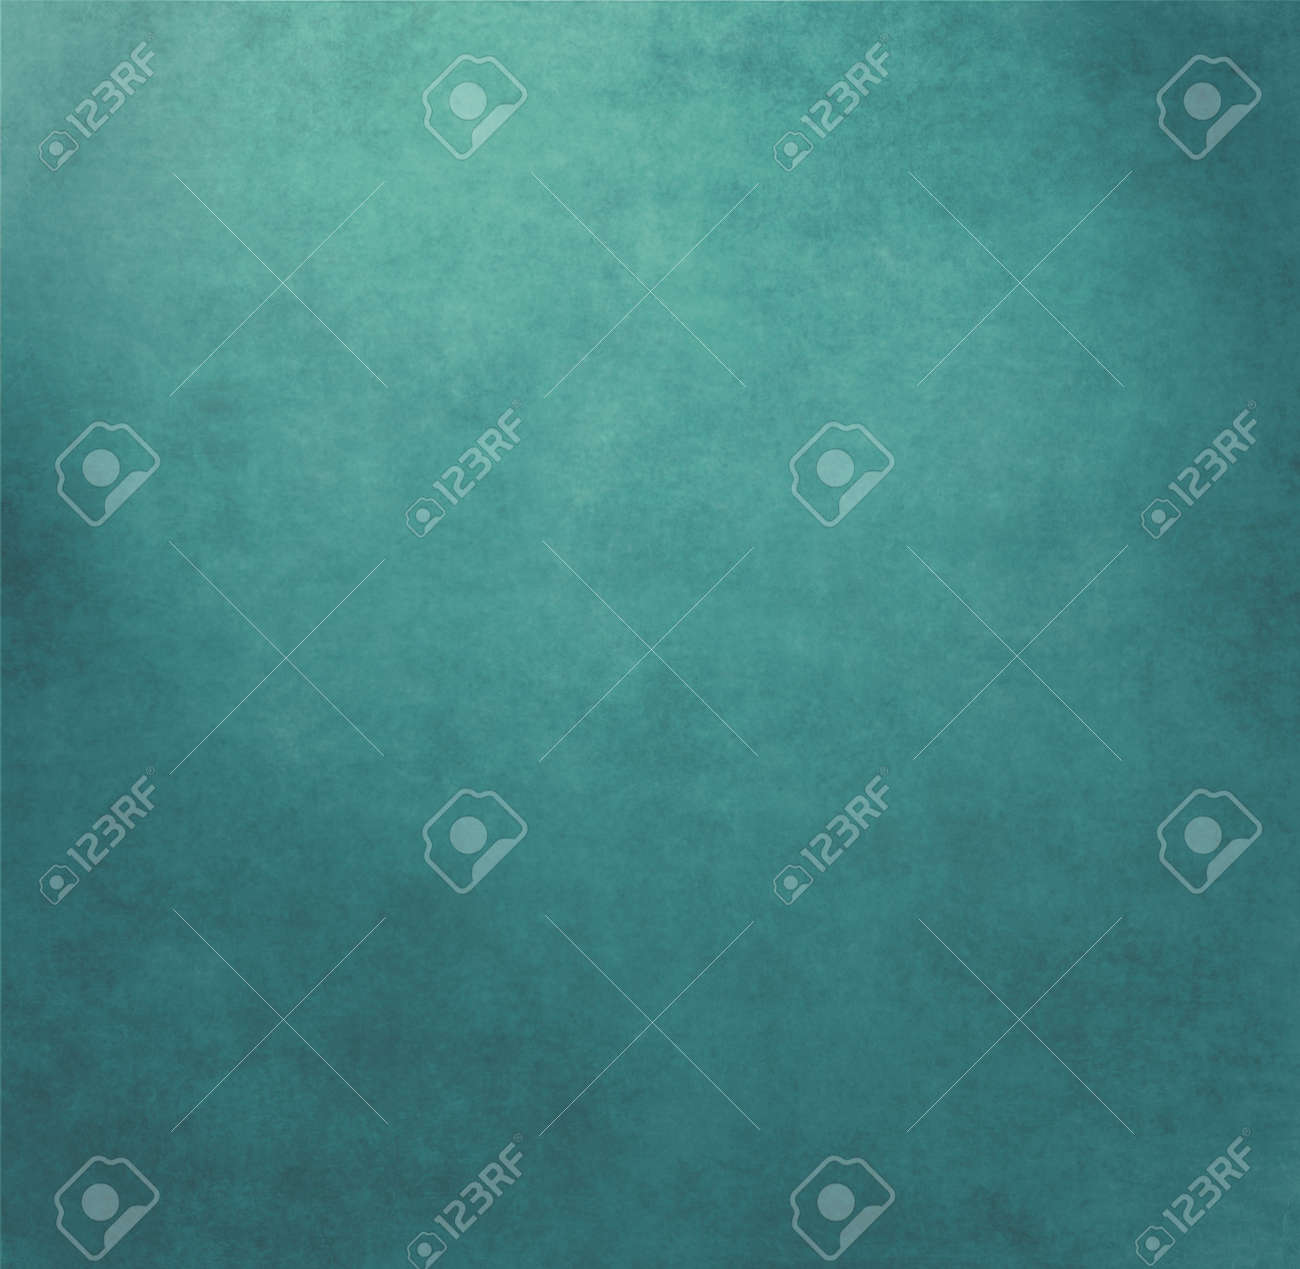 abstract texture background design layout - 33877387